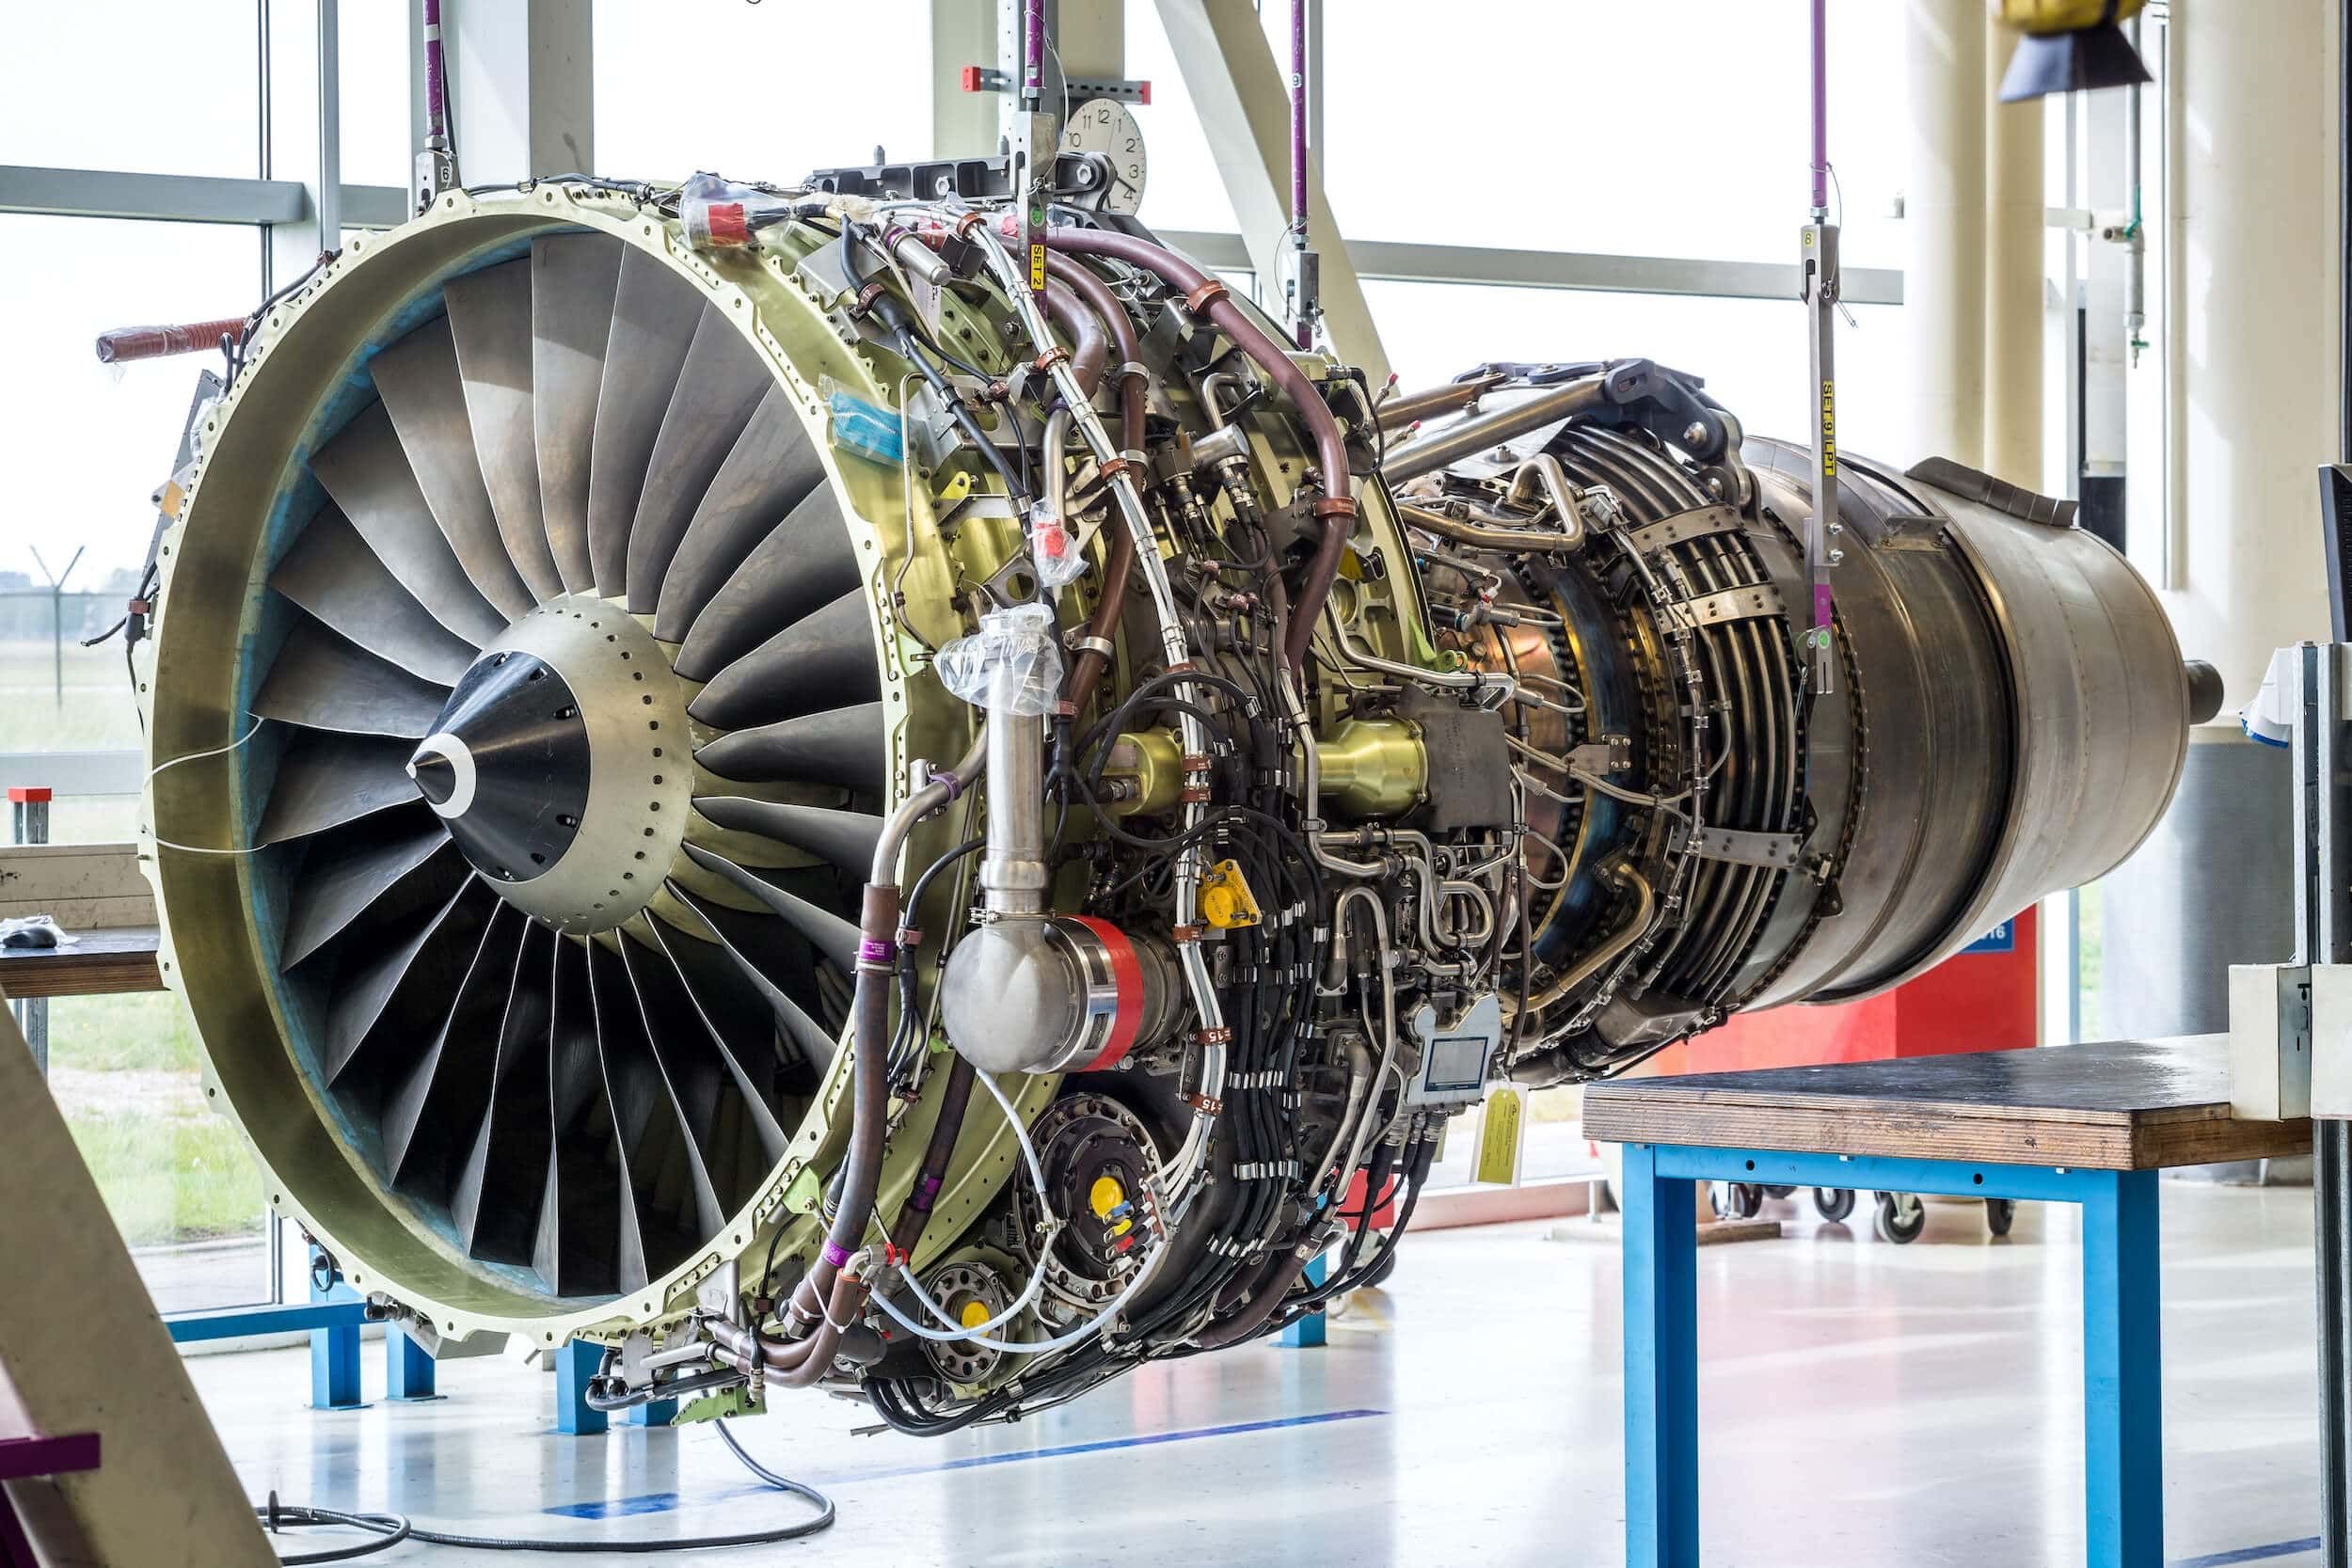 Jet Engine being Maintained in Hangar - Honeywell engines